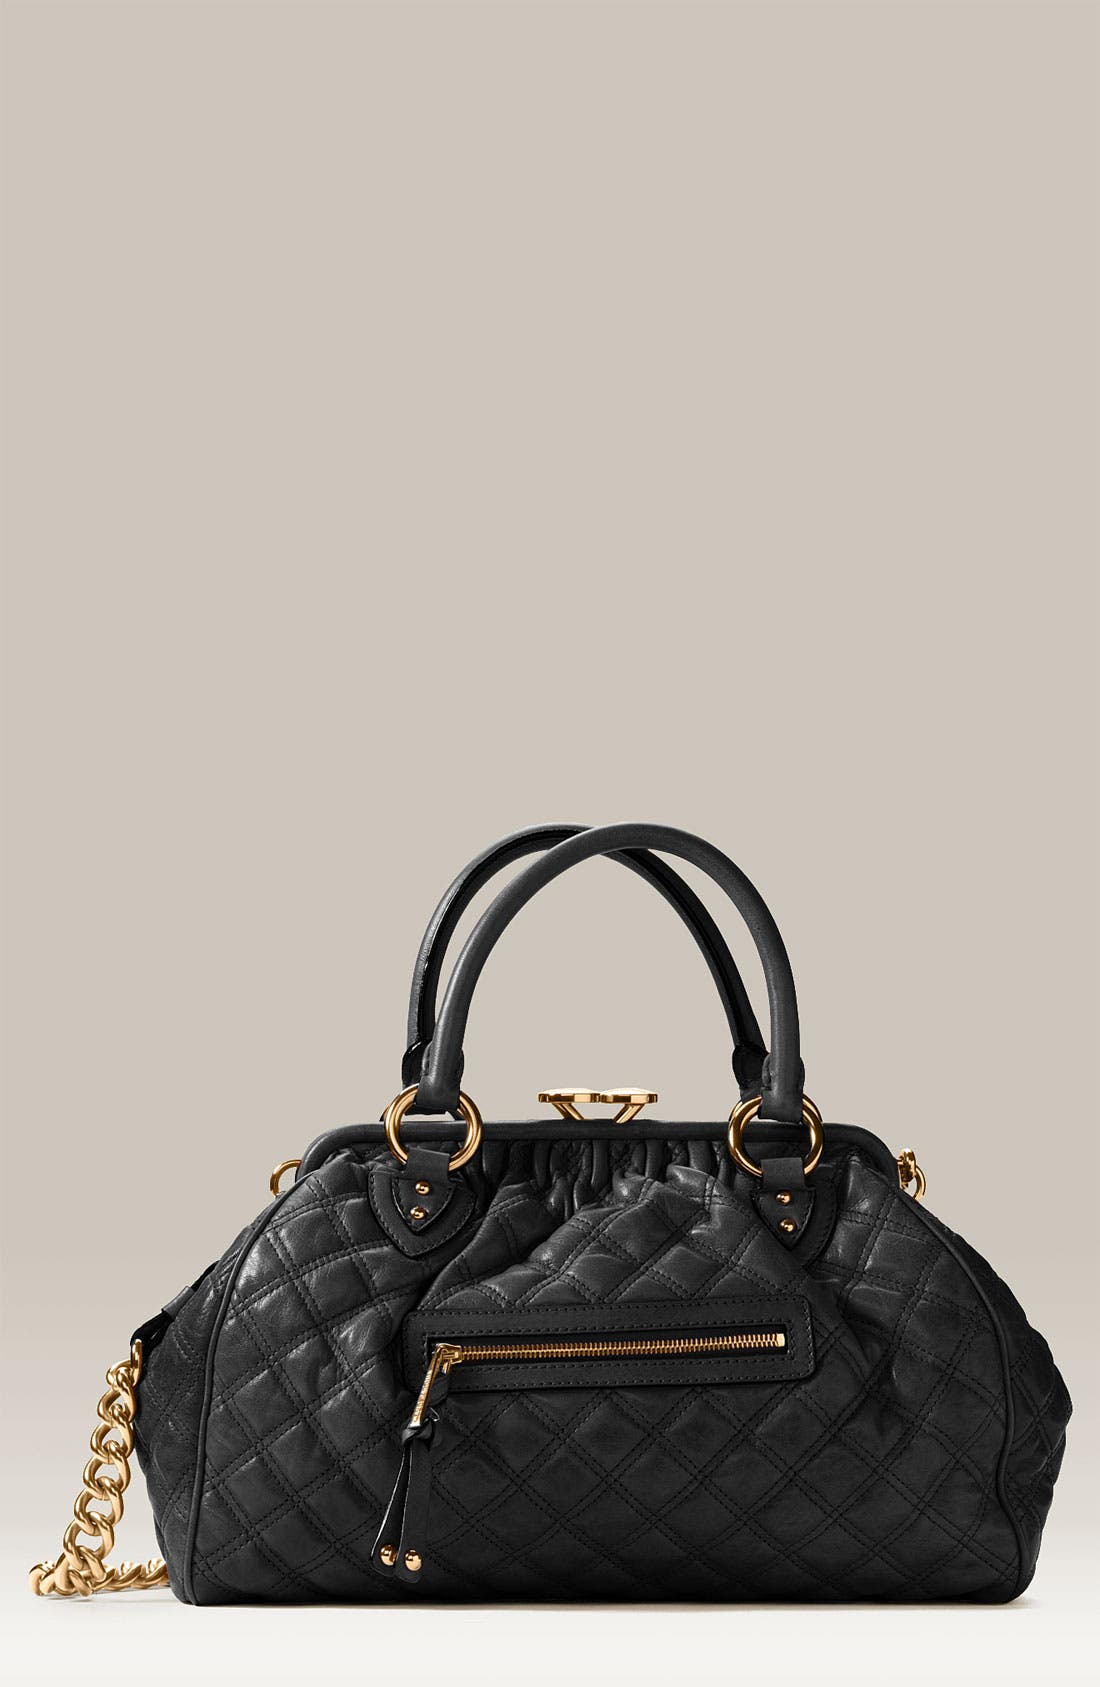 MARC JACOBS, 'Stam' Quilted Frame Satchel, Main thumbnail 1, color, 001